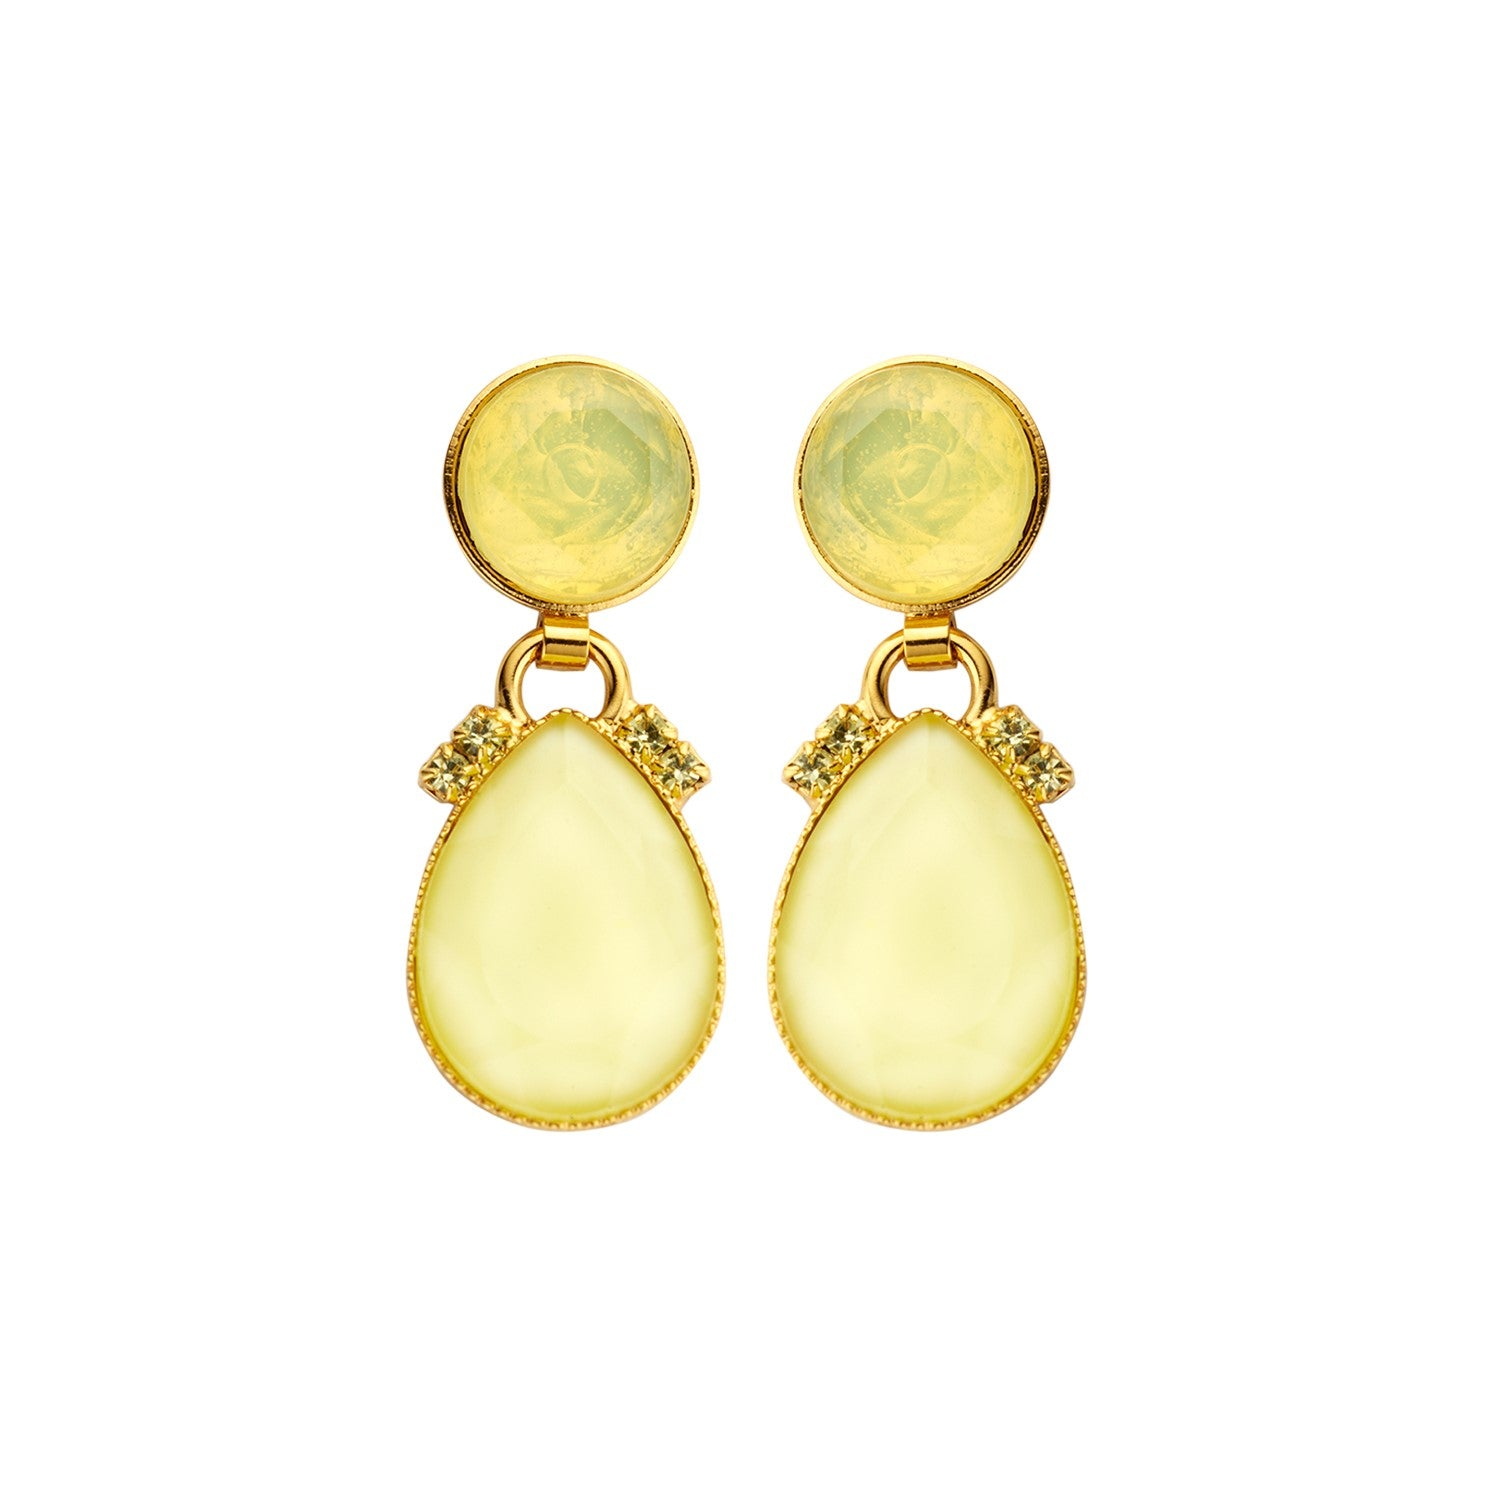 Mini 2drops yellow earrings - Souvenirs de Pomme